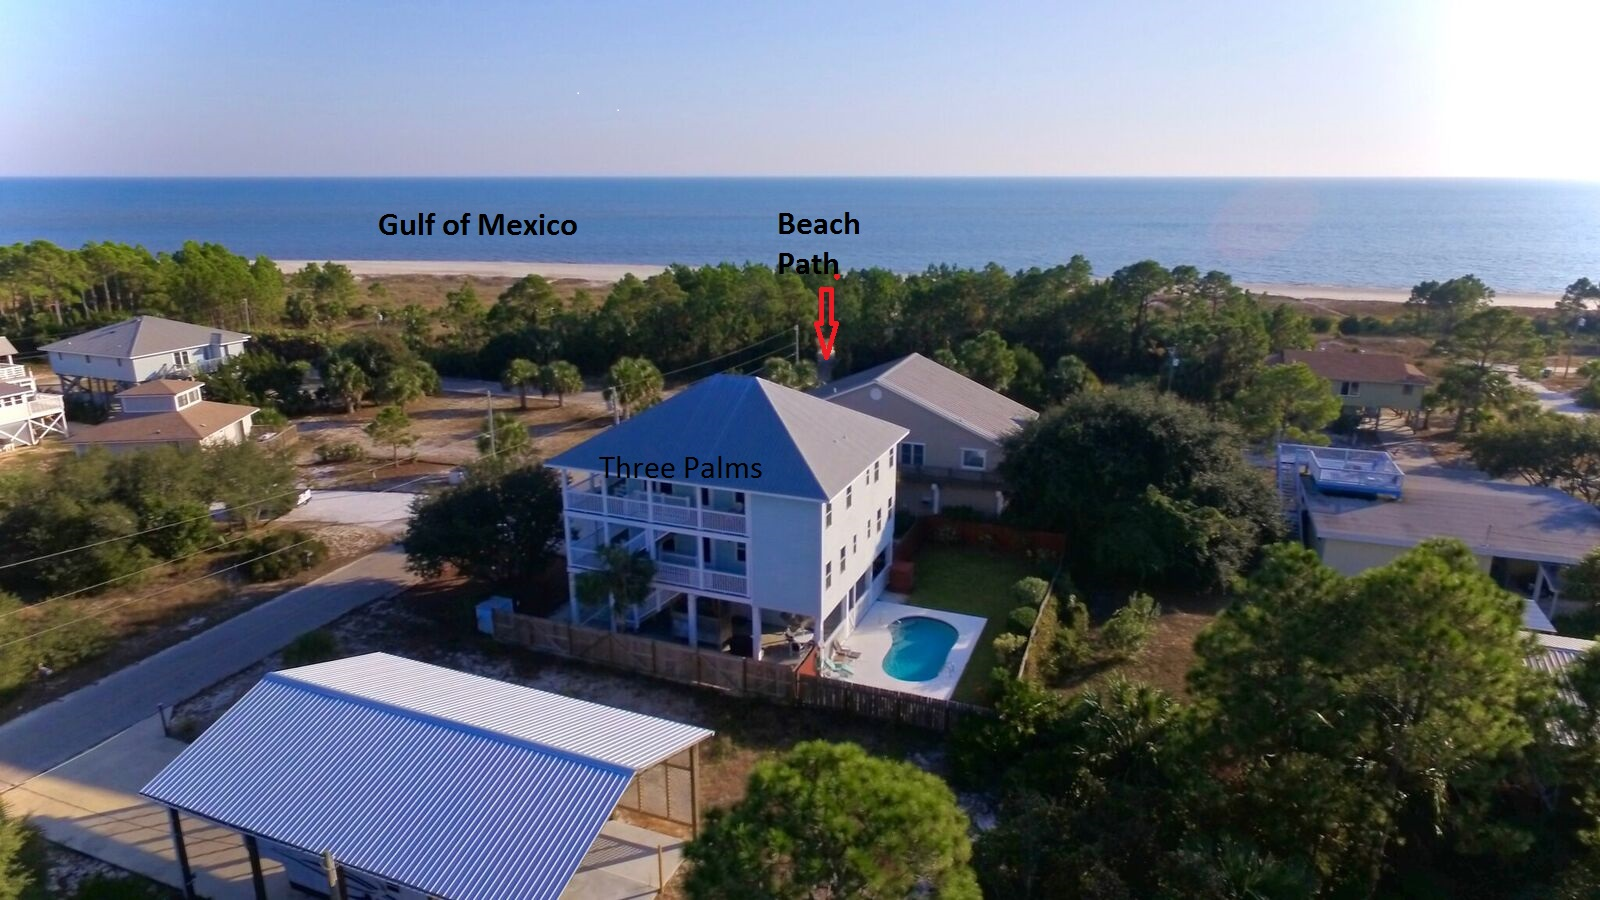 Drone Photo of Beach, Path to Beach, House and Pool